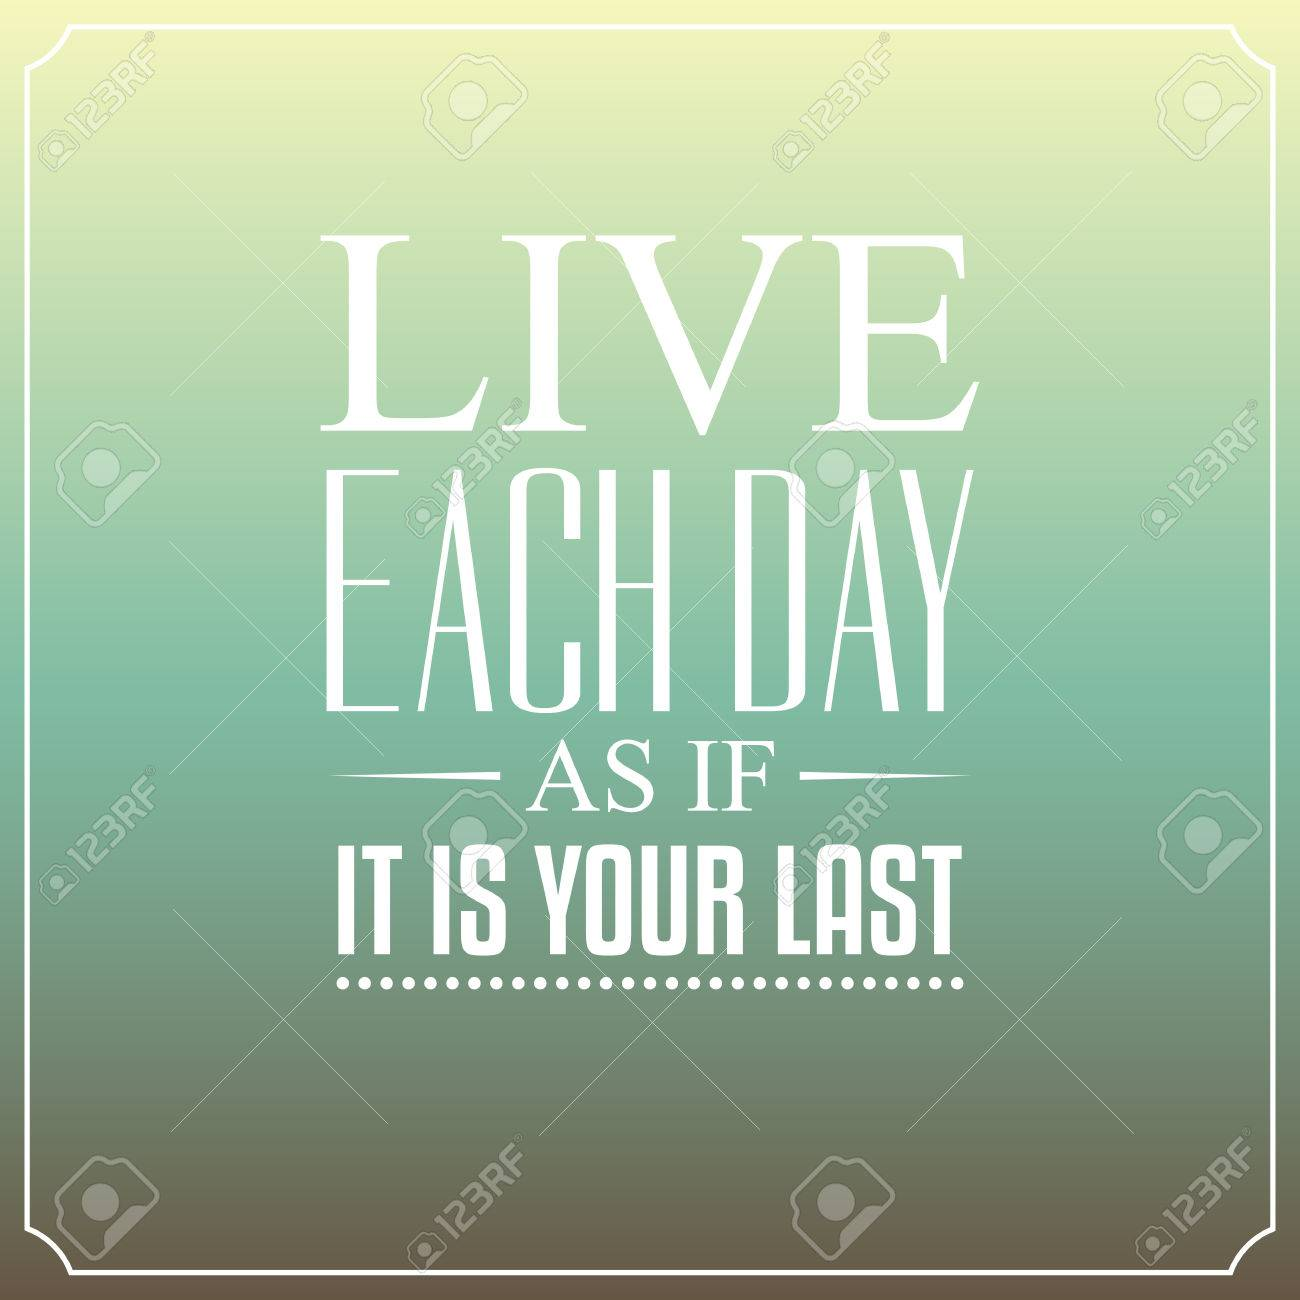 Live Each Day As If It Is Your Last Quotes Typography Background